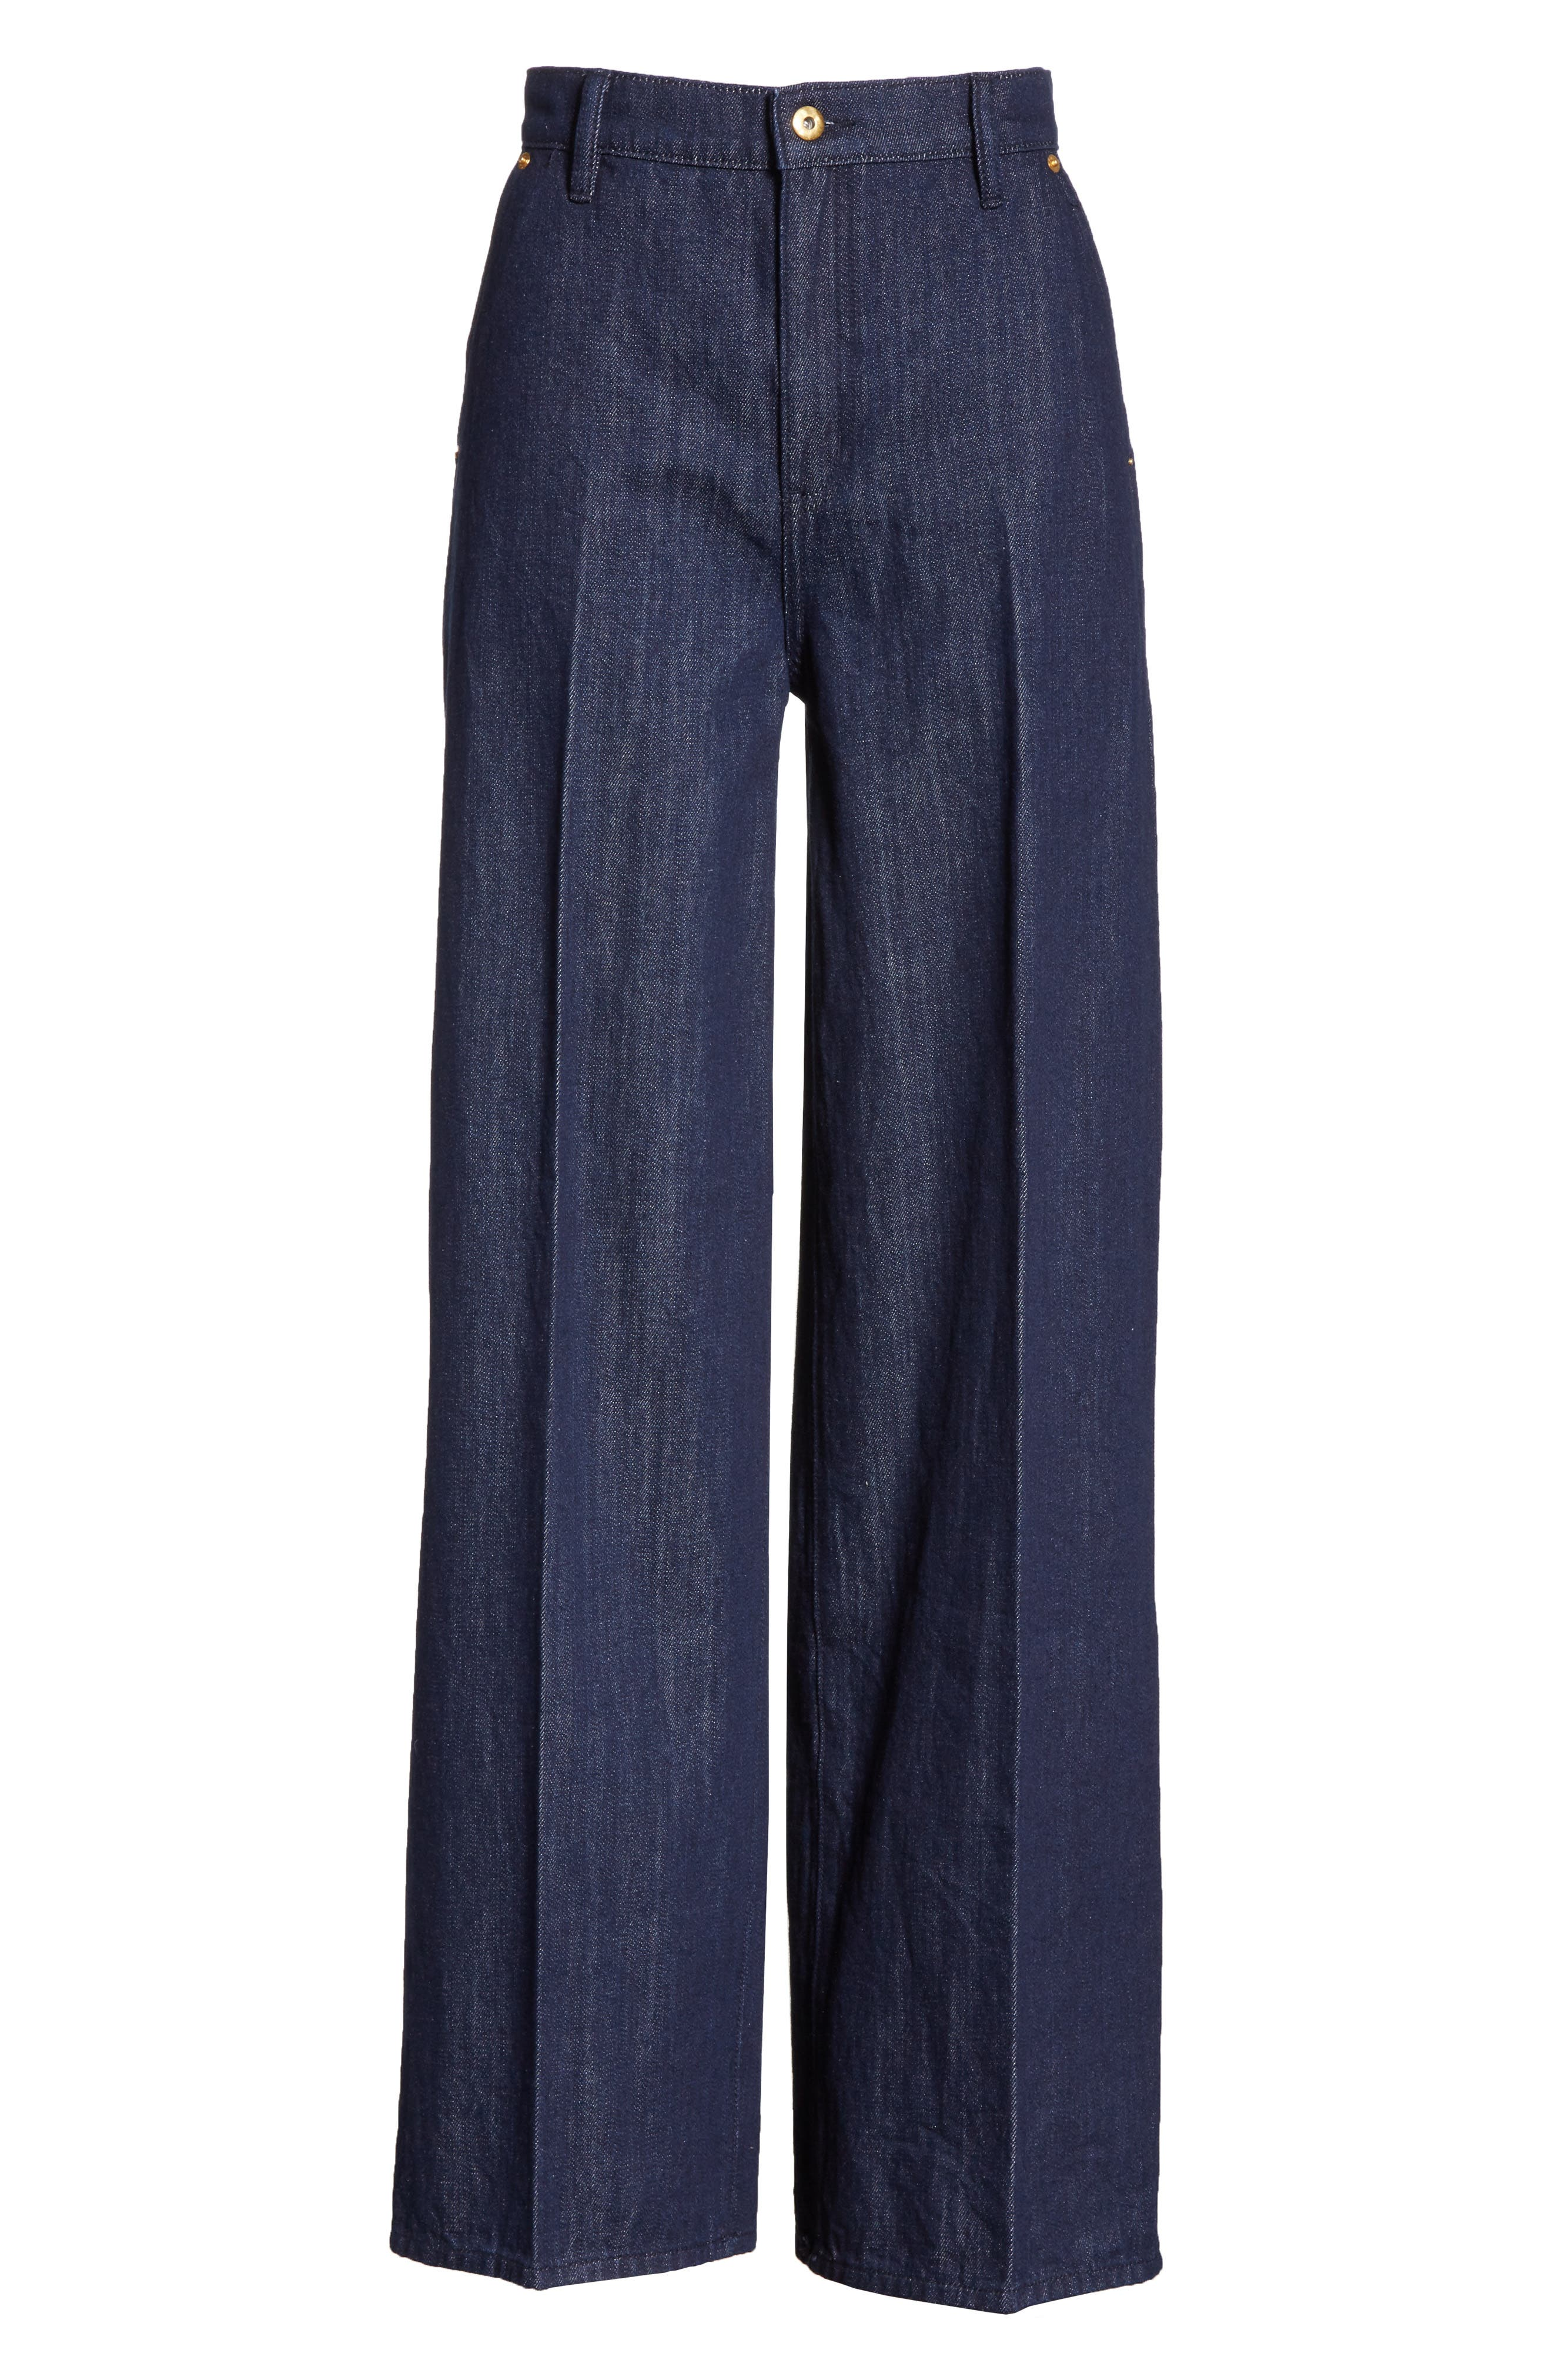 Tilly Jeans,                             Alternate thumbnail 6, color,                             Rinse Wash - Combo A